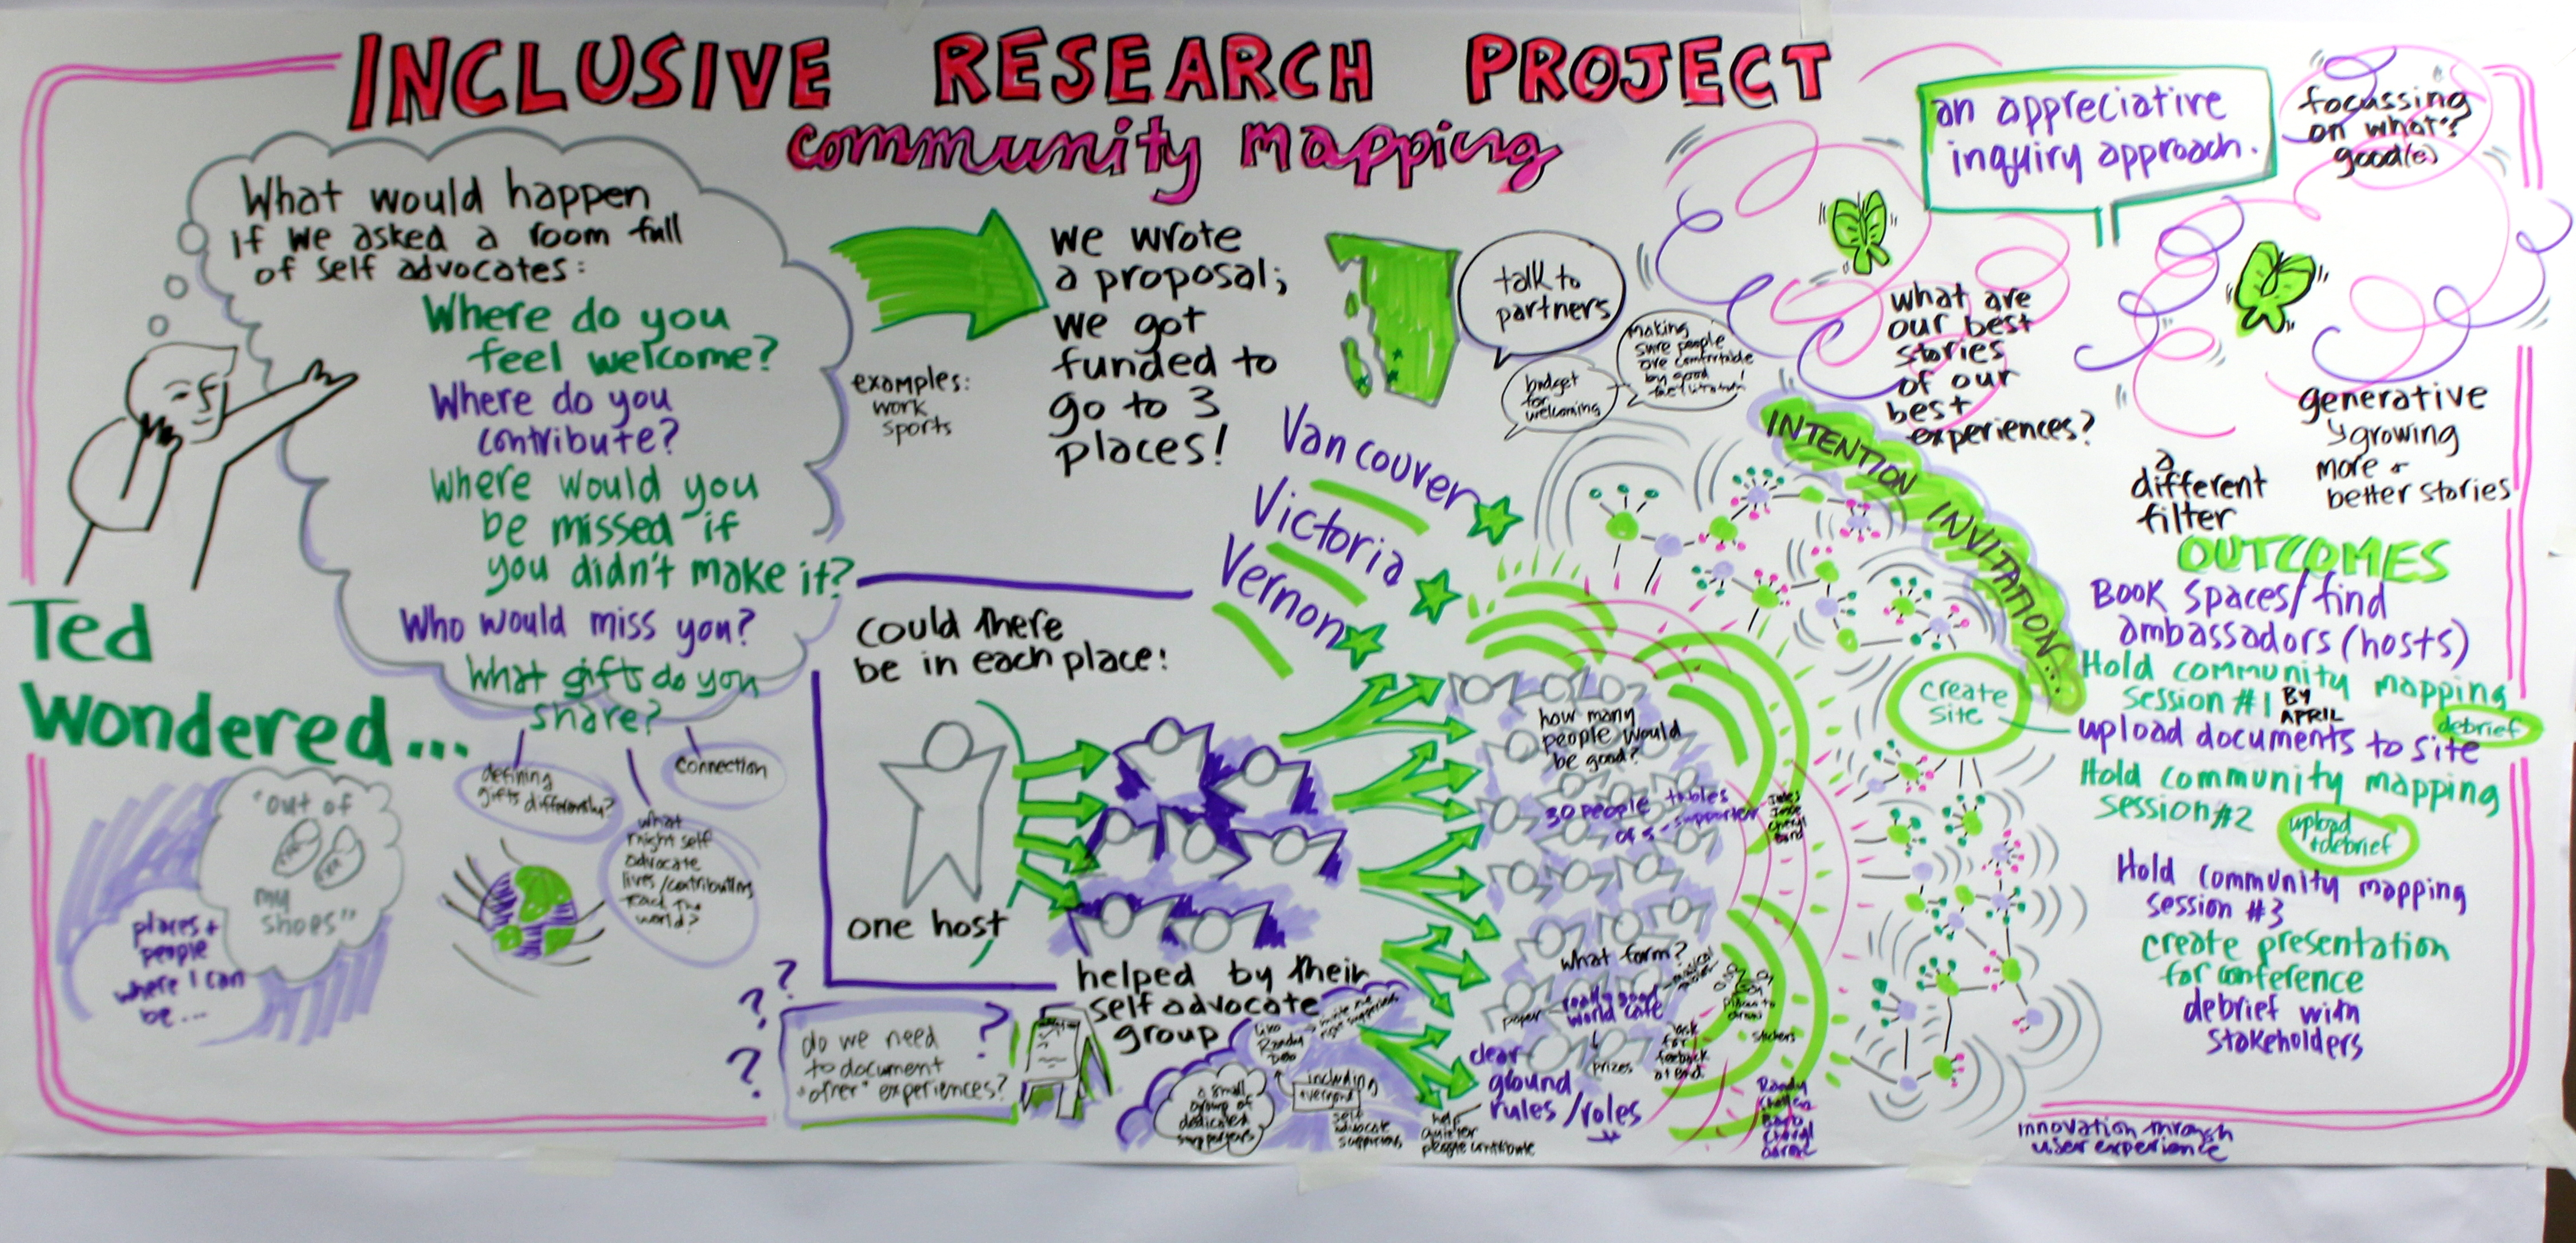 bc ideas award inclusive research project community mapping 101